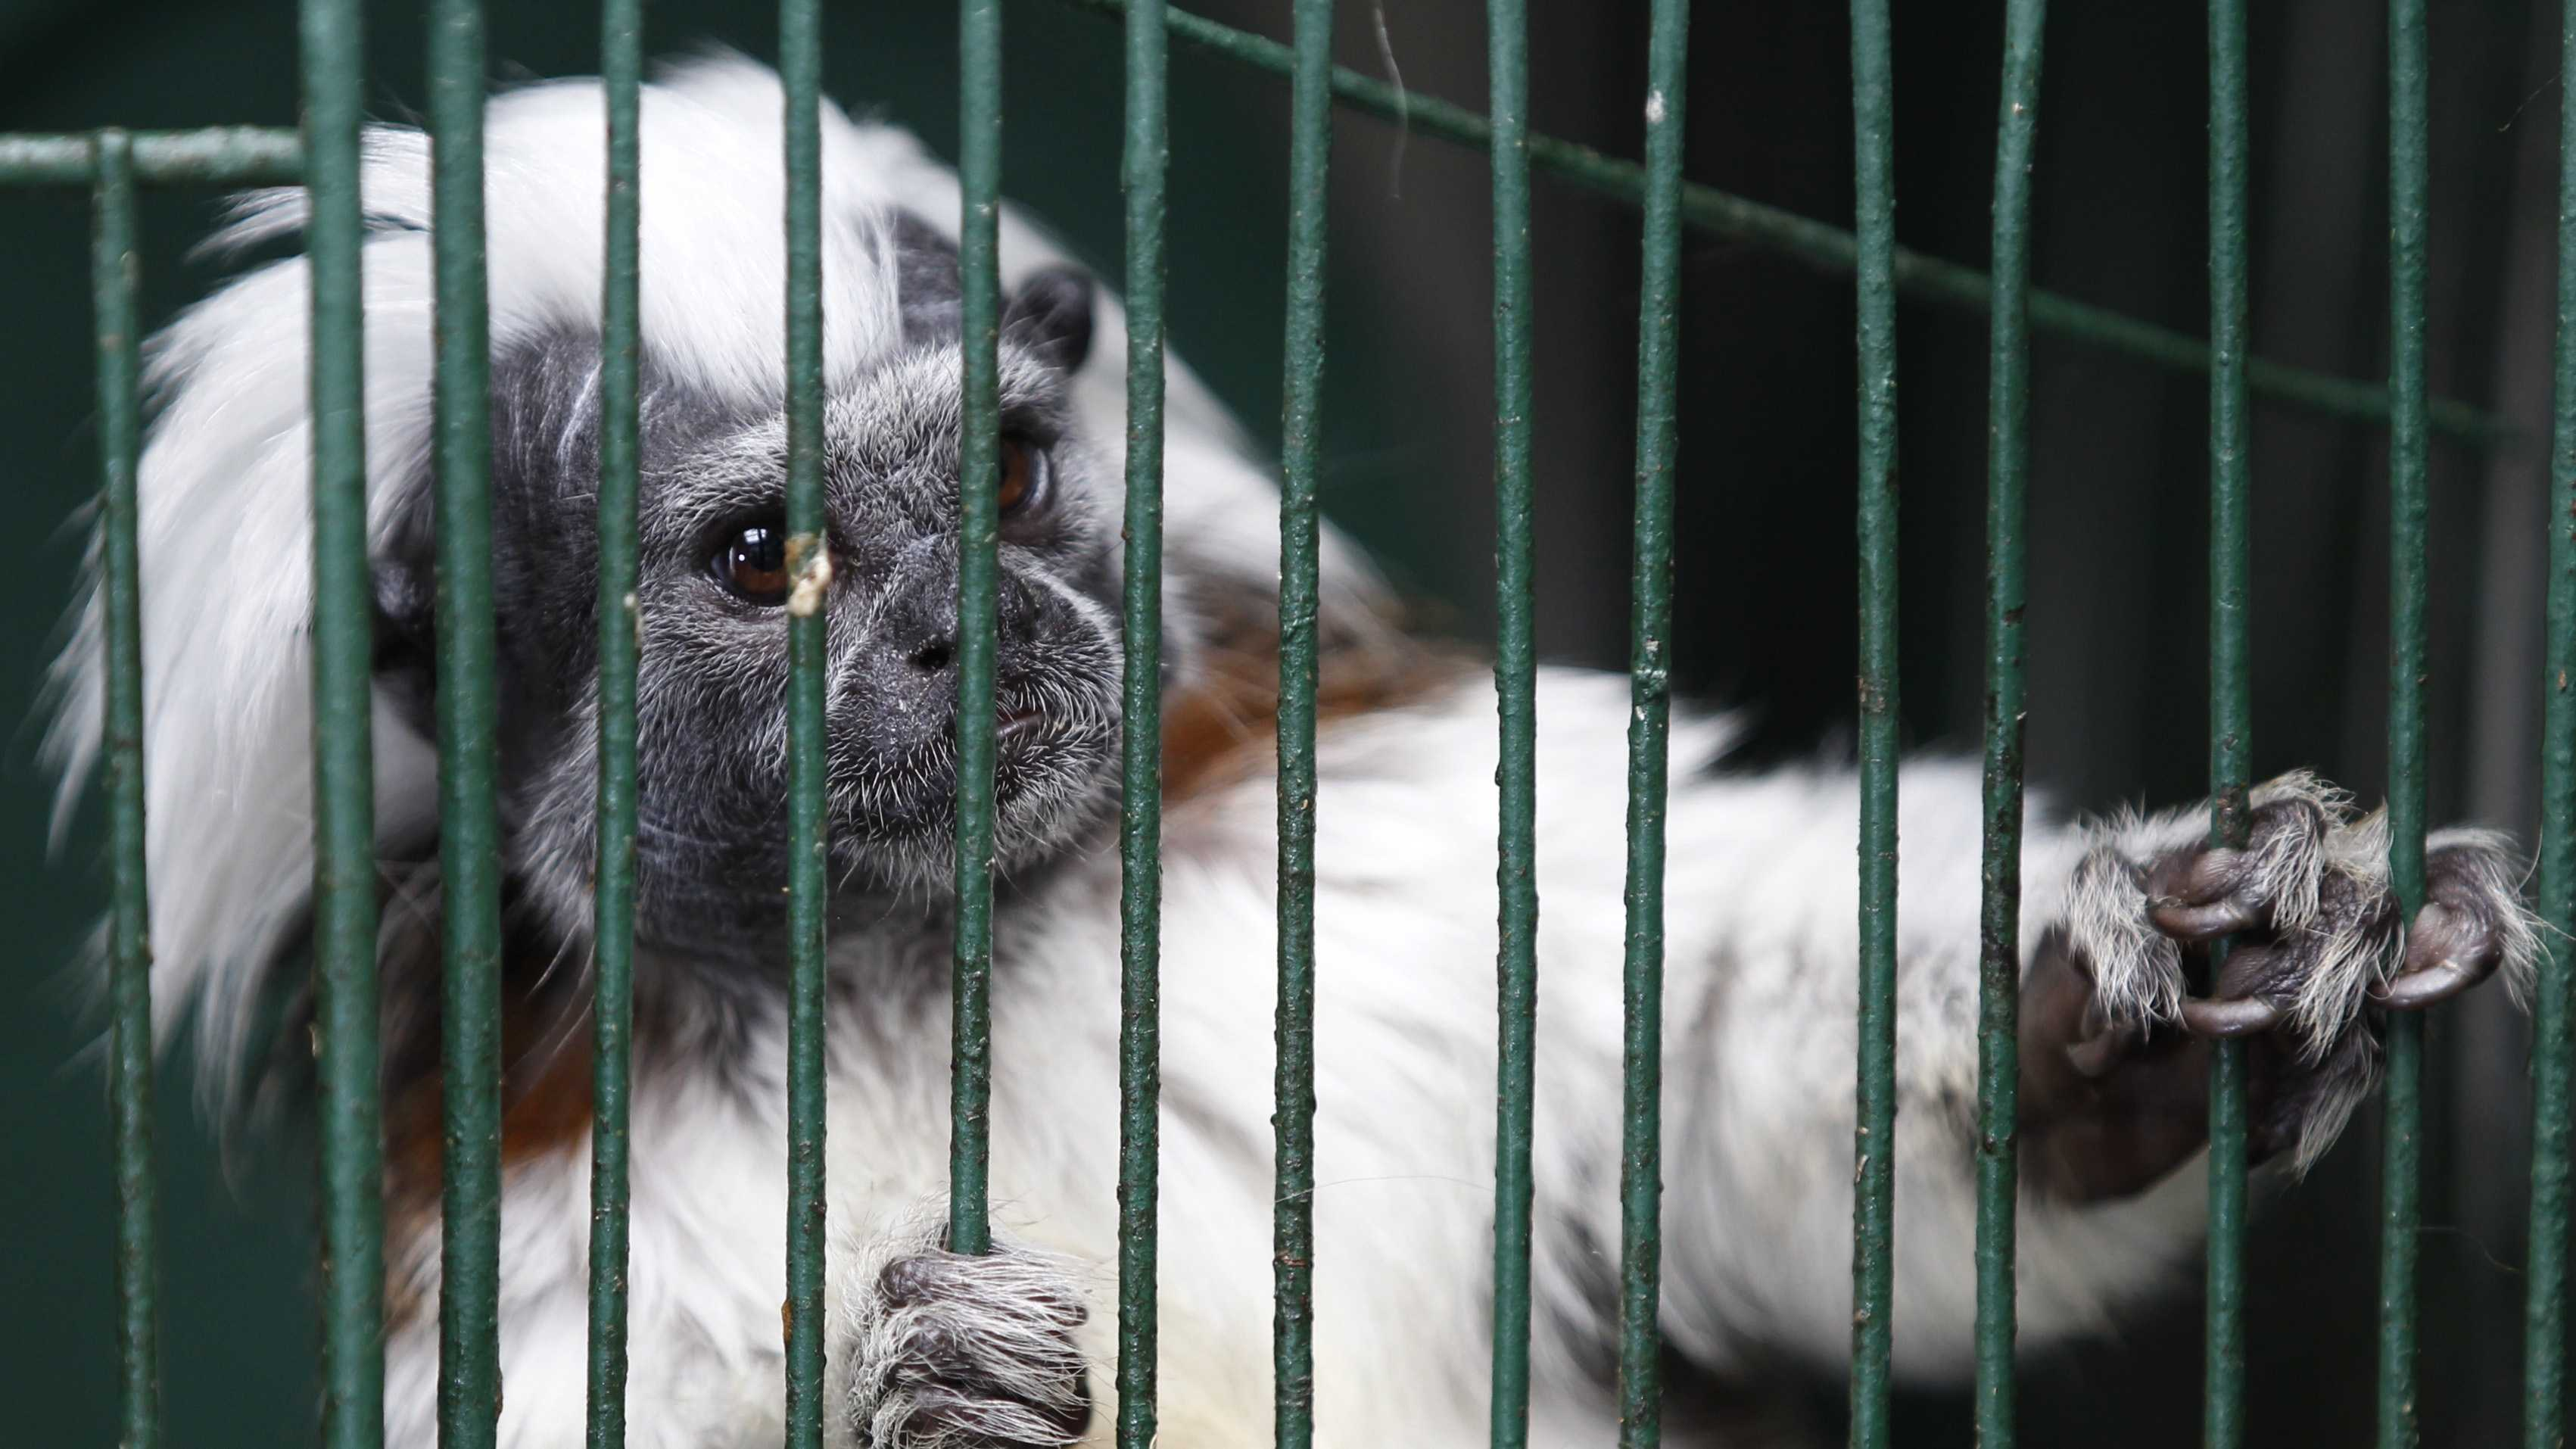 A young cotton-headed tamarin looks out from its cage at a temporary shelter west of Bogota, Colombia, Monday, Feb. 18, 2013.